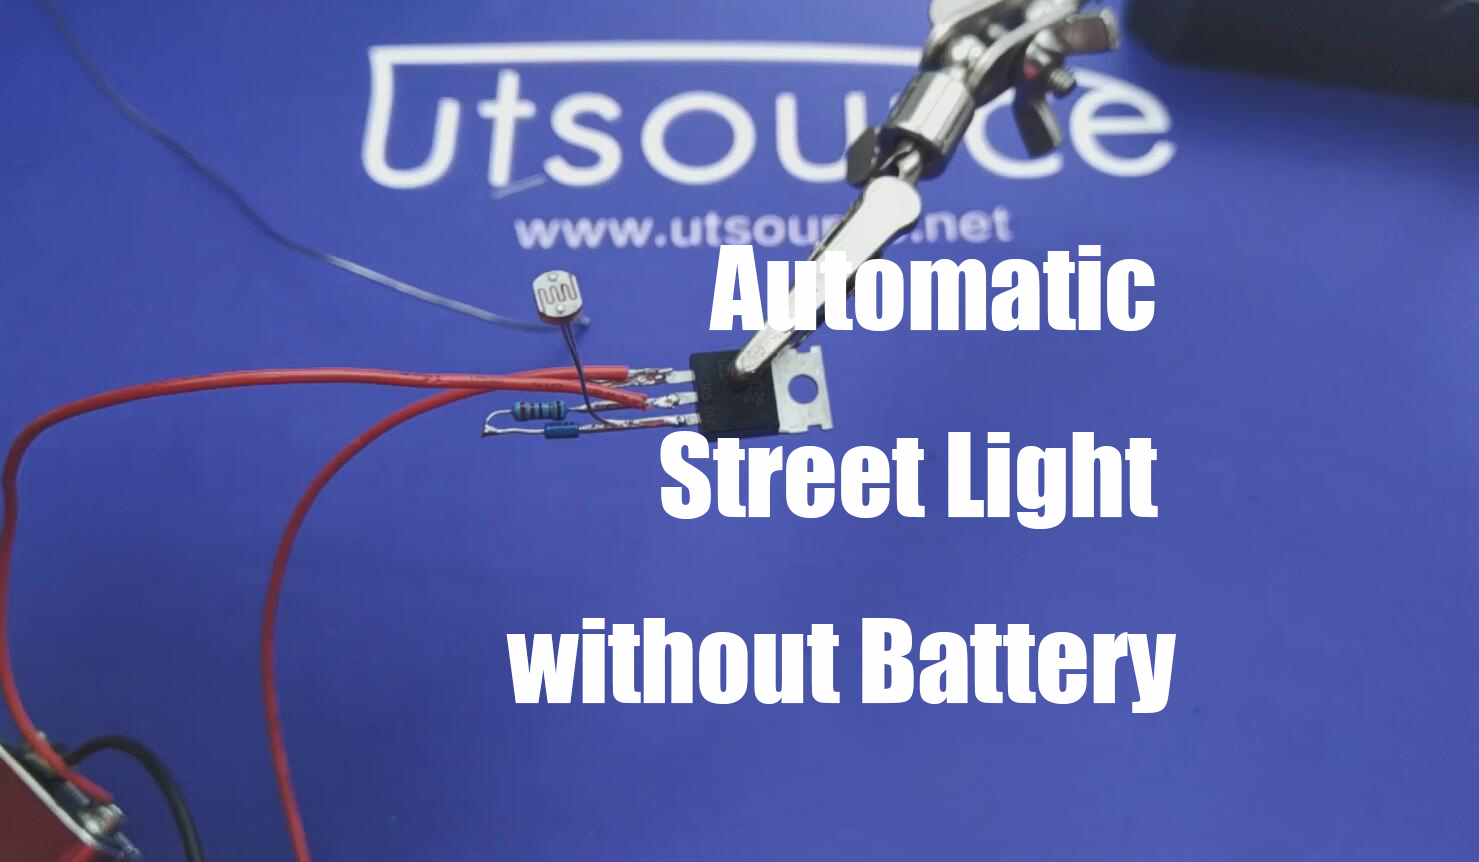 Automatic street light without battery